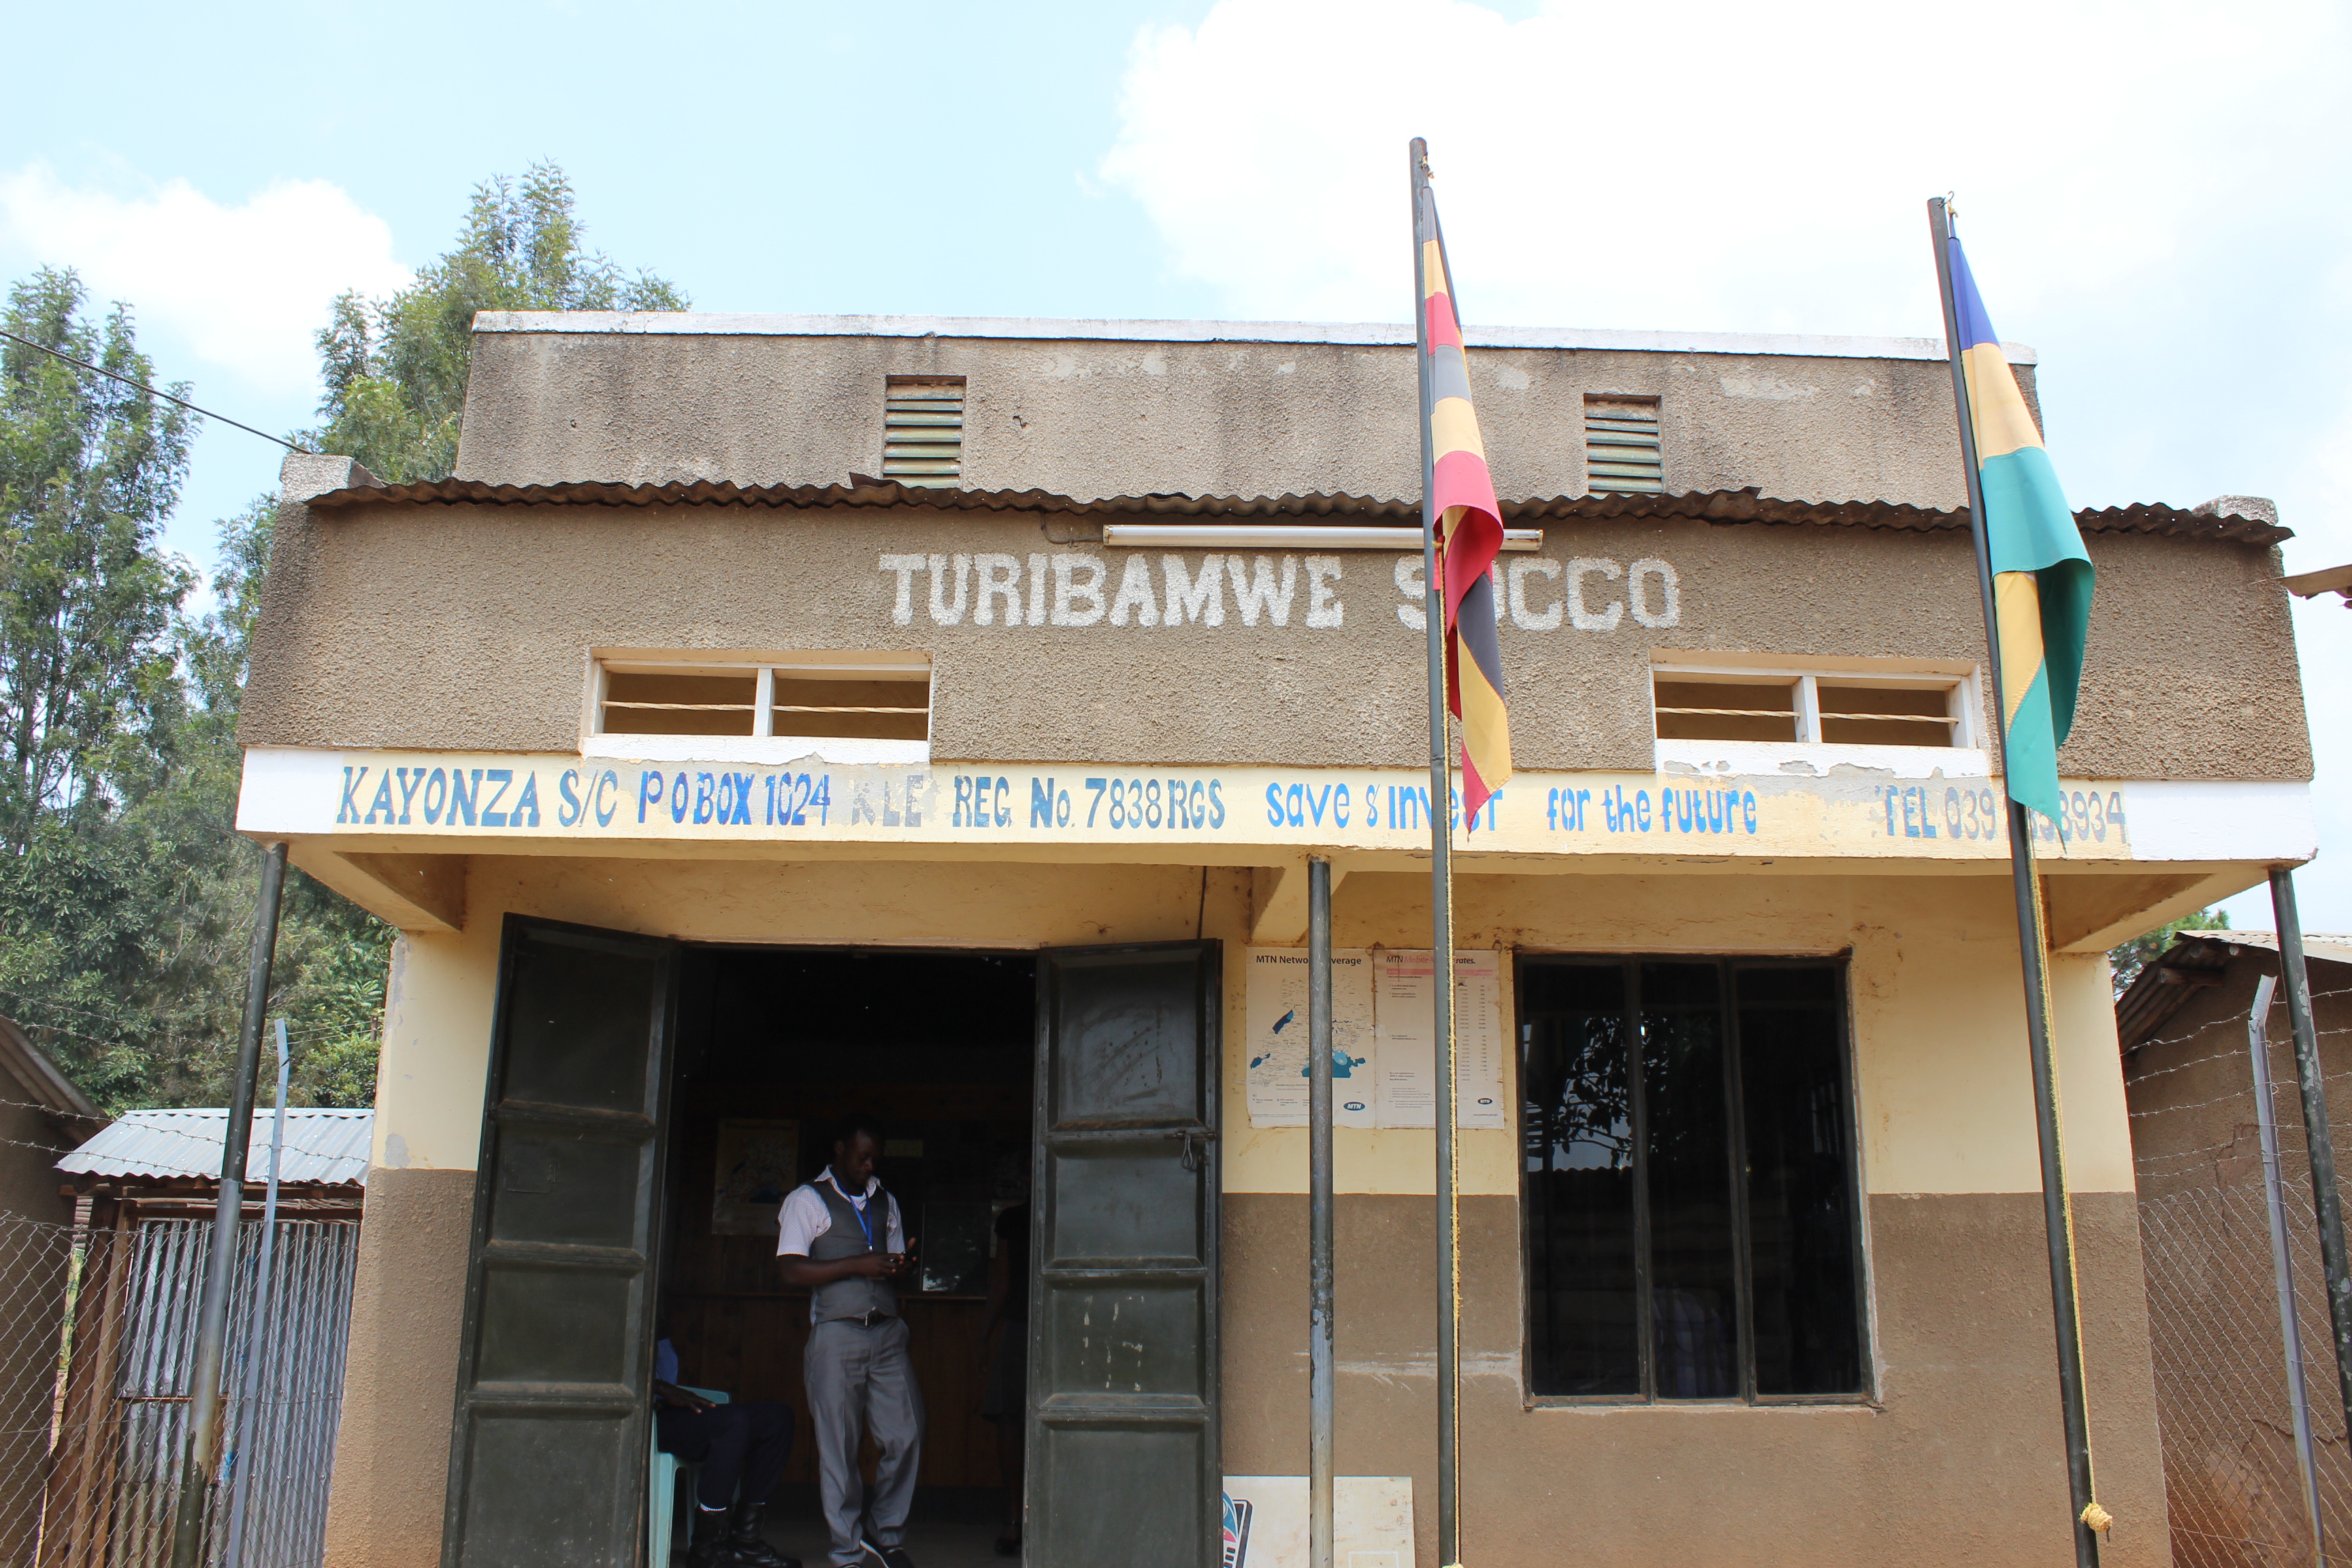 Money Loans And Satellite Dishes A Short Introduction To Sacco Question Everything